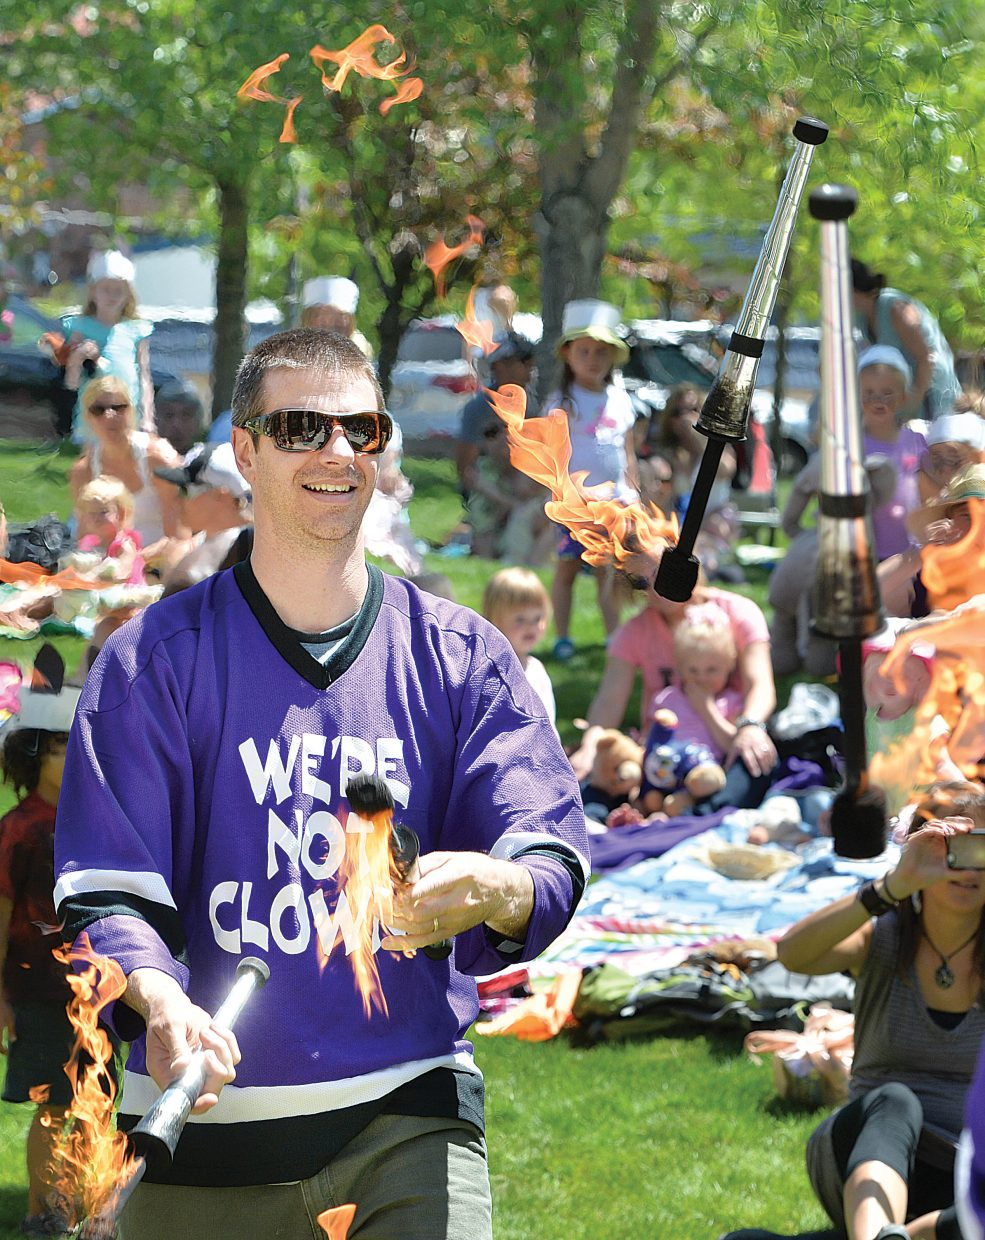 Kelly Anzalone, from We're Not Clowns, juggles flaming pins during the annual Teddy Bear Picnic at the Bud Werner Memorial Library Thursday morning. The event included entertainment from the Yampa Valley Boys and We're Not Clowns as well as face painting.